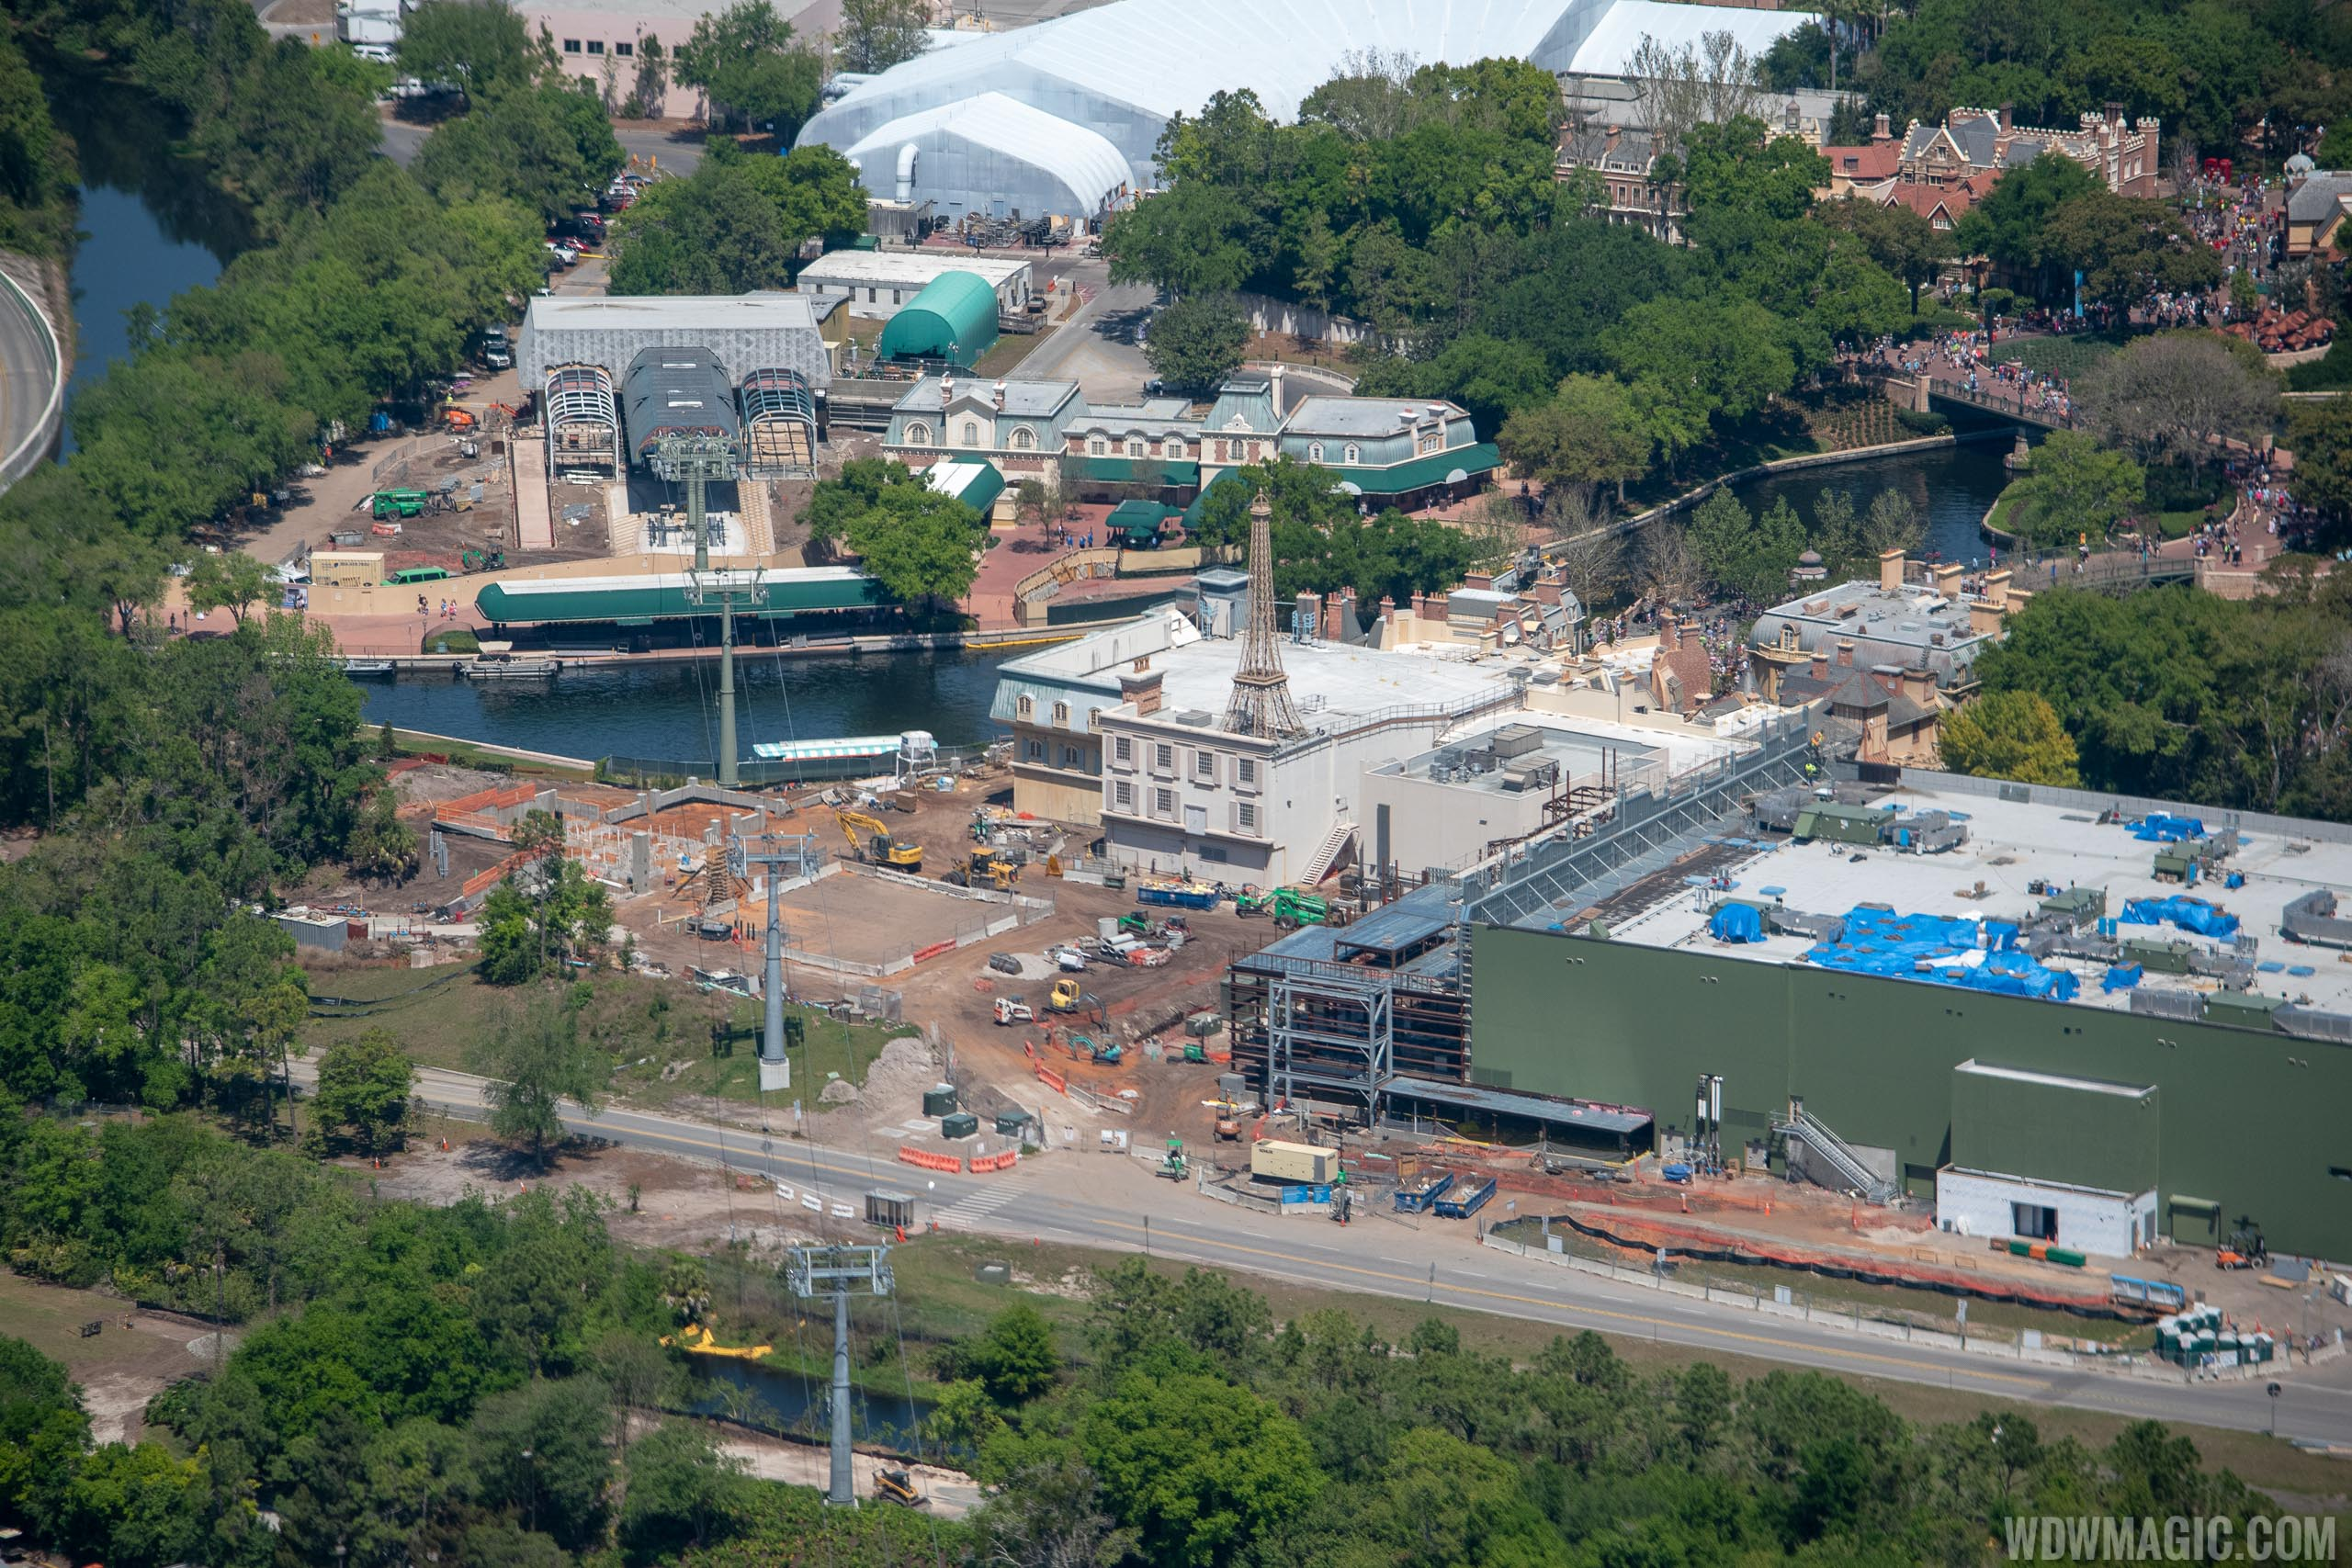 Remy's Ratatouille Adventure construction - March 2019